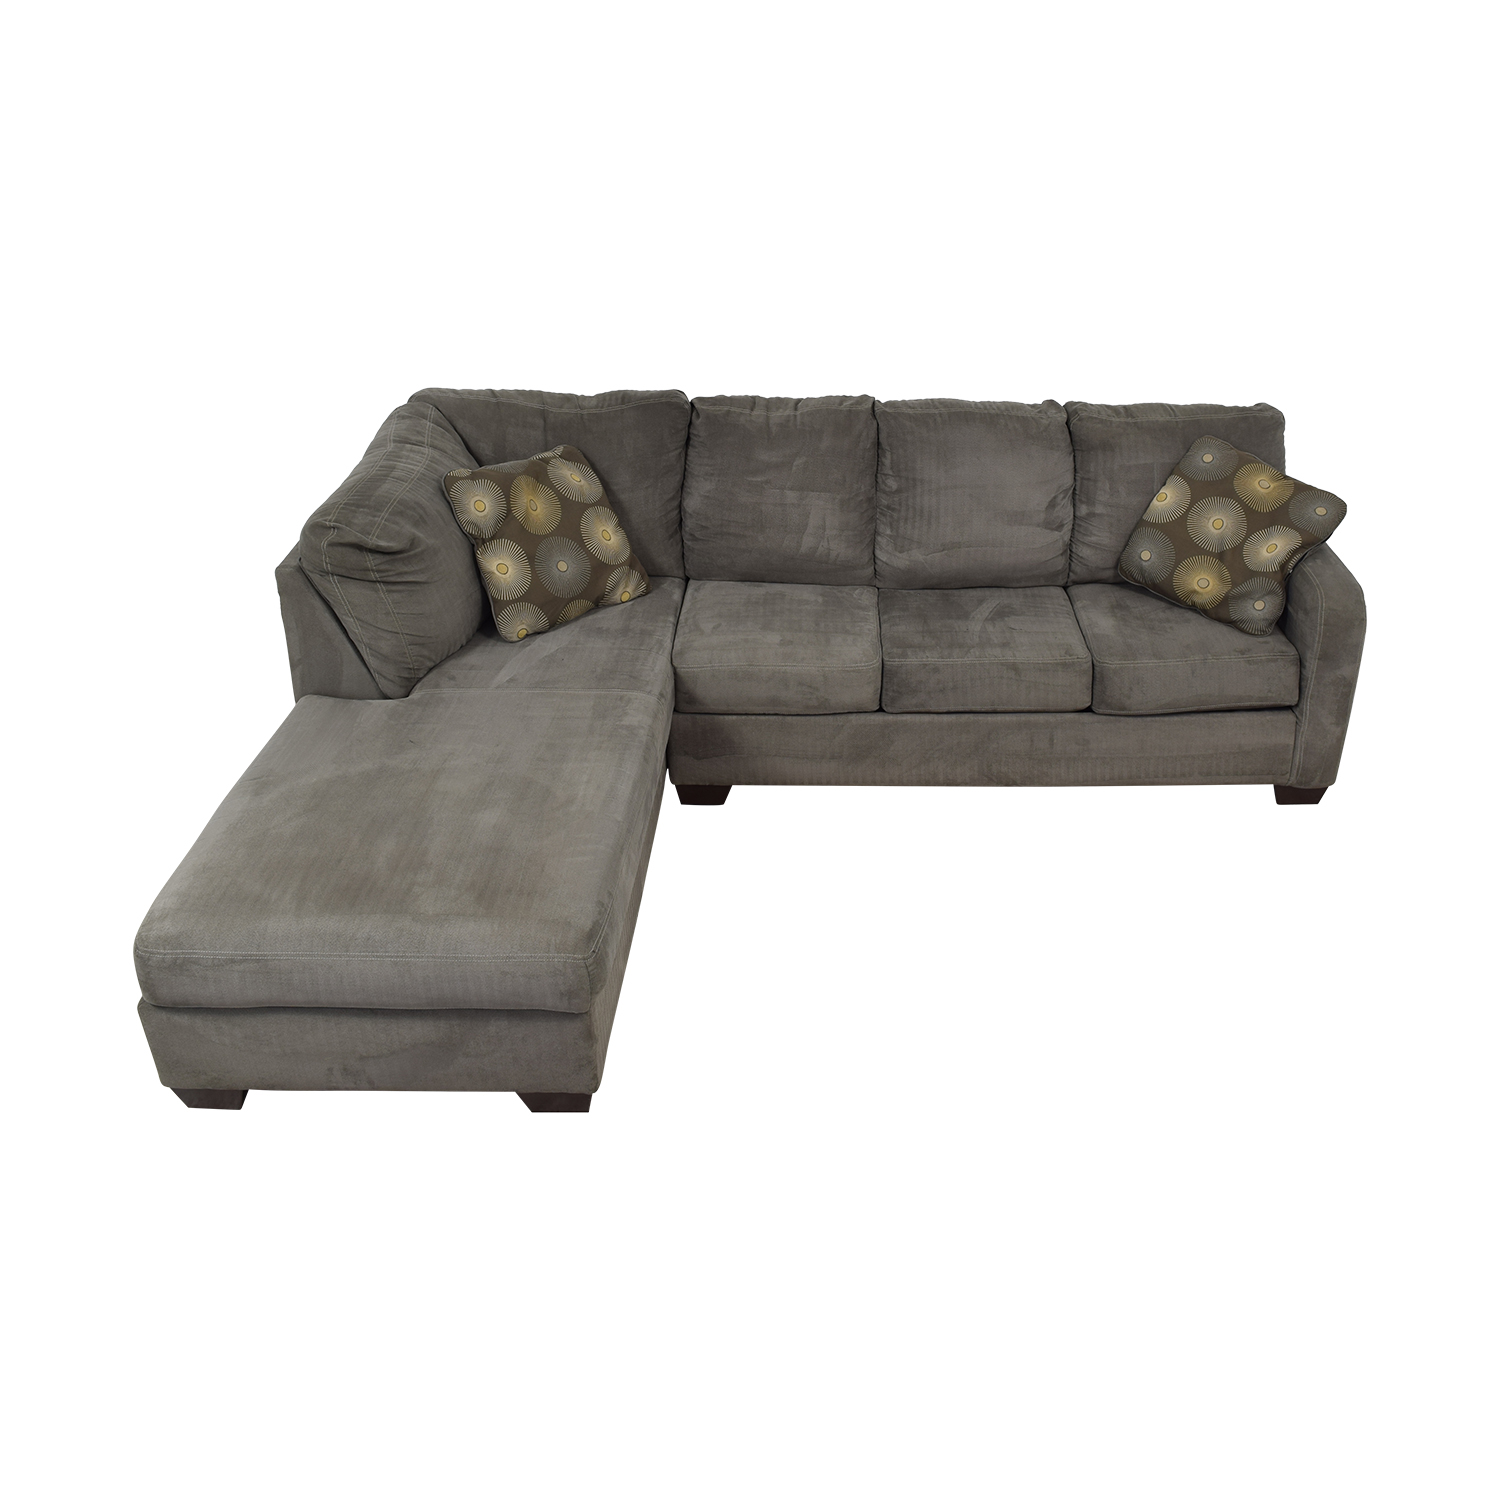 Ashley Furniture Ashley Furniture Gray Sectional dimensions